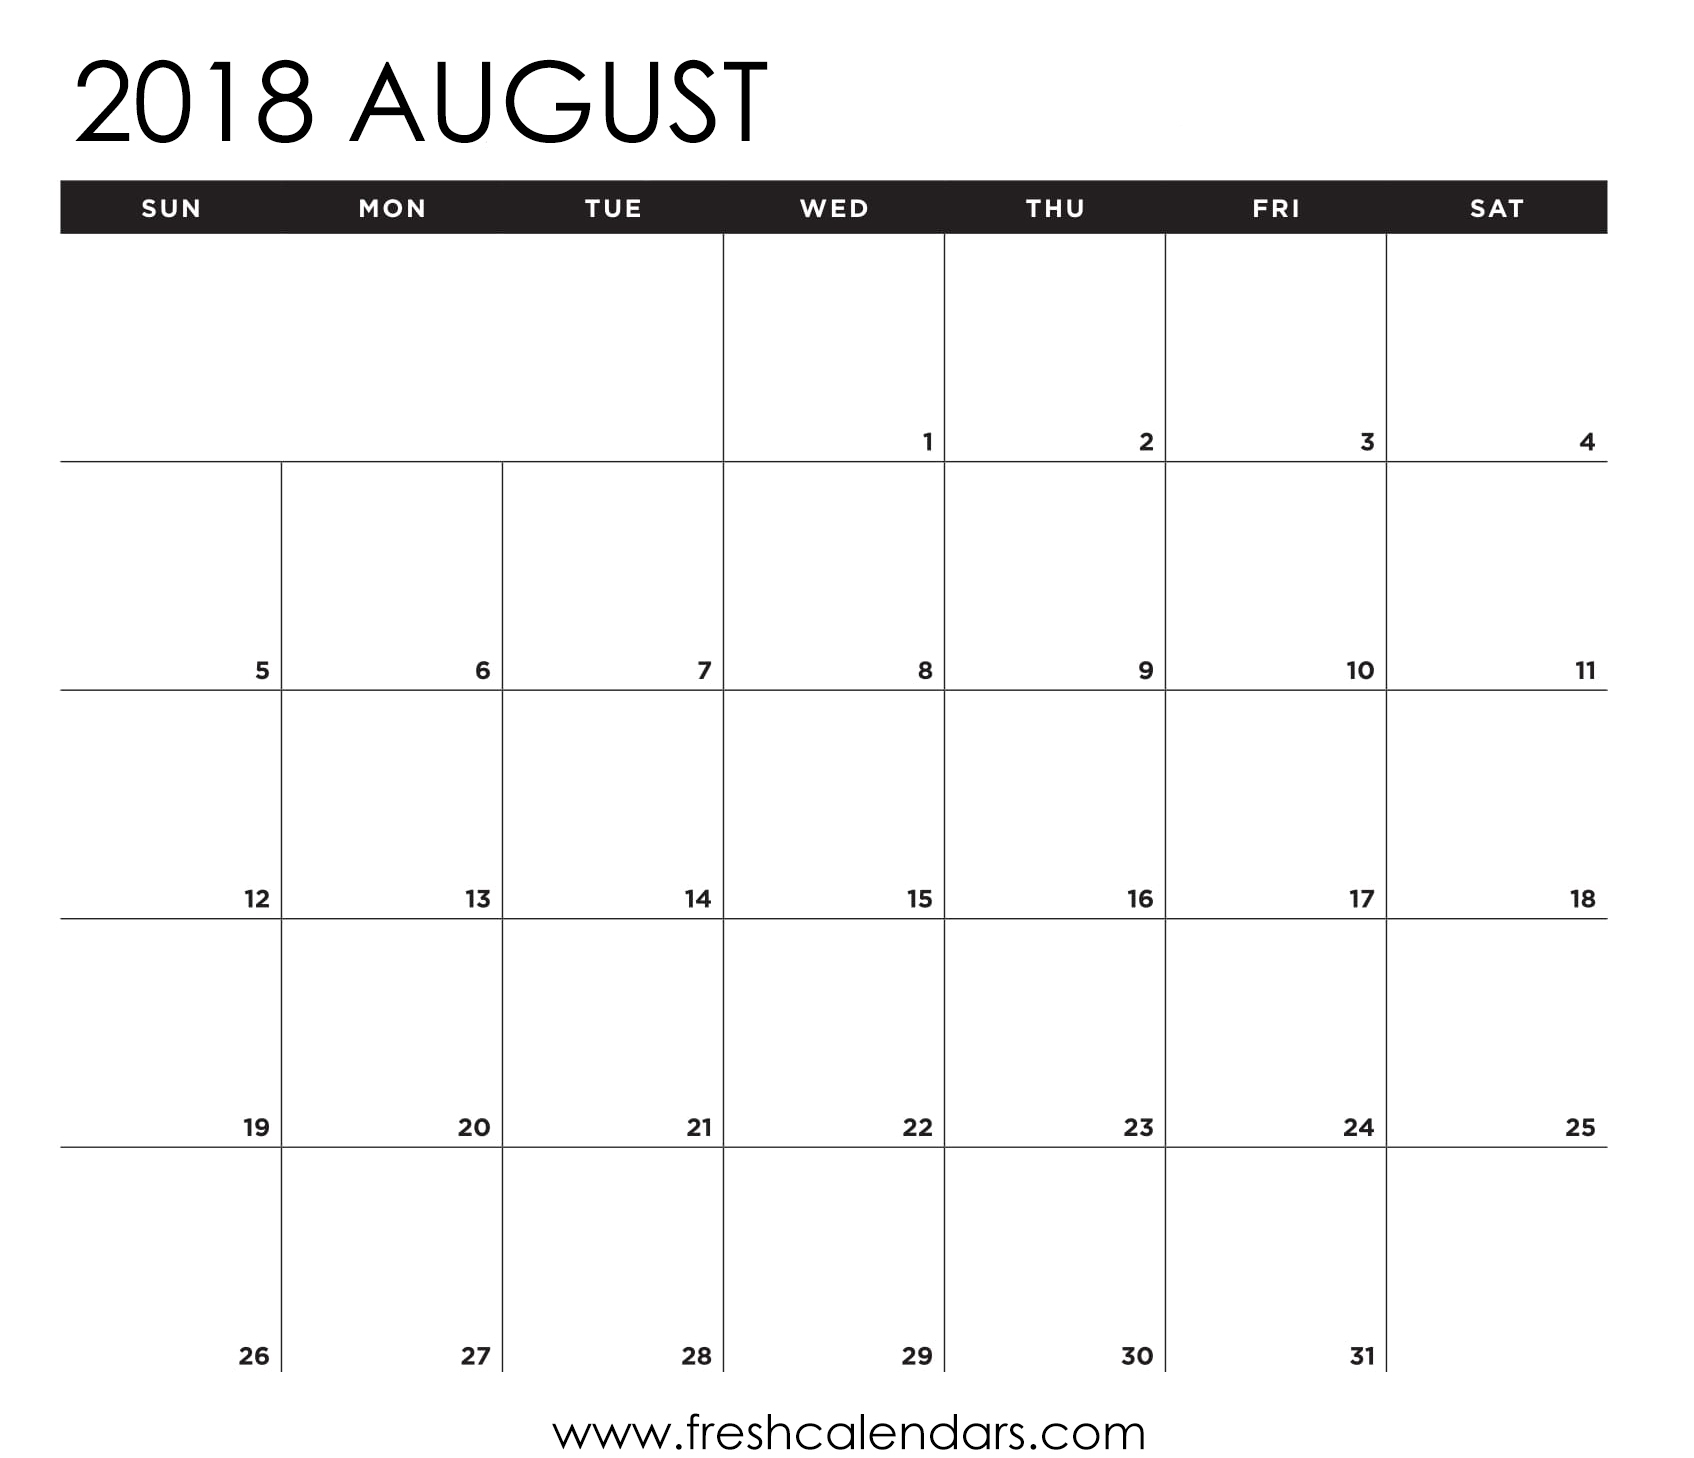 August 2018 Calendar Printable - Fresh Calendars pertaining to August Calendar Template With Notes